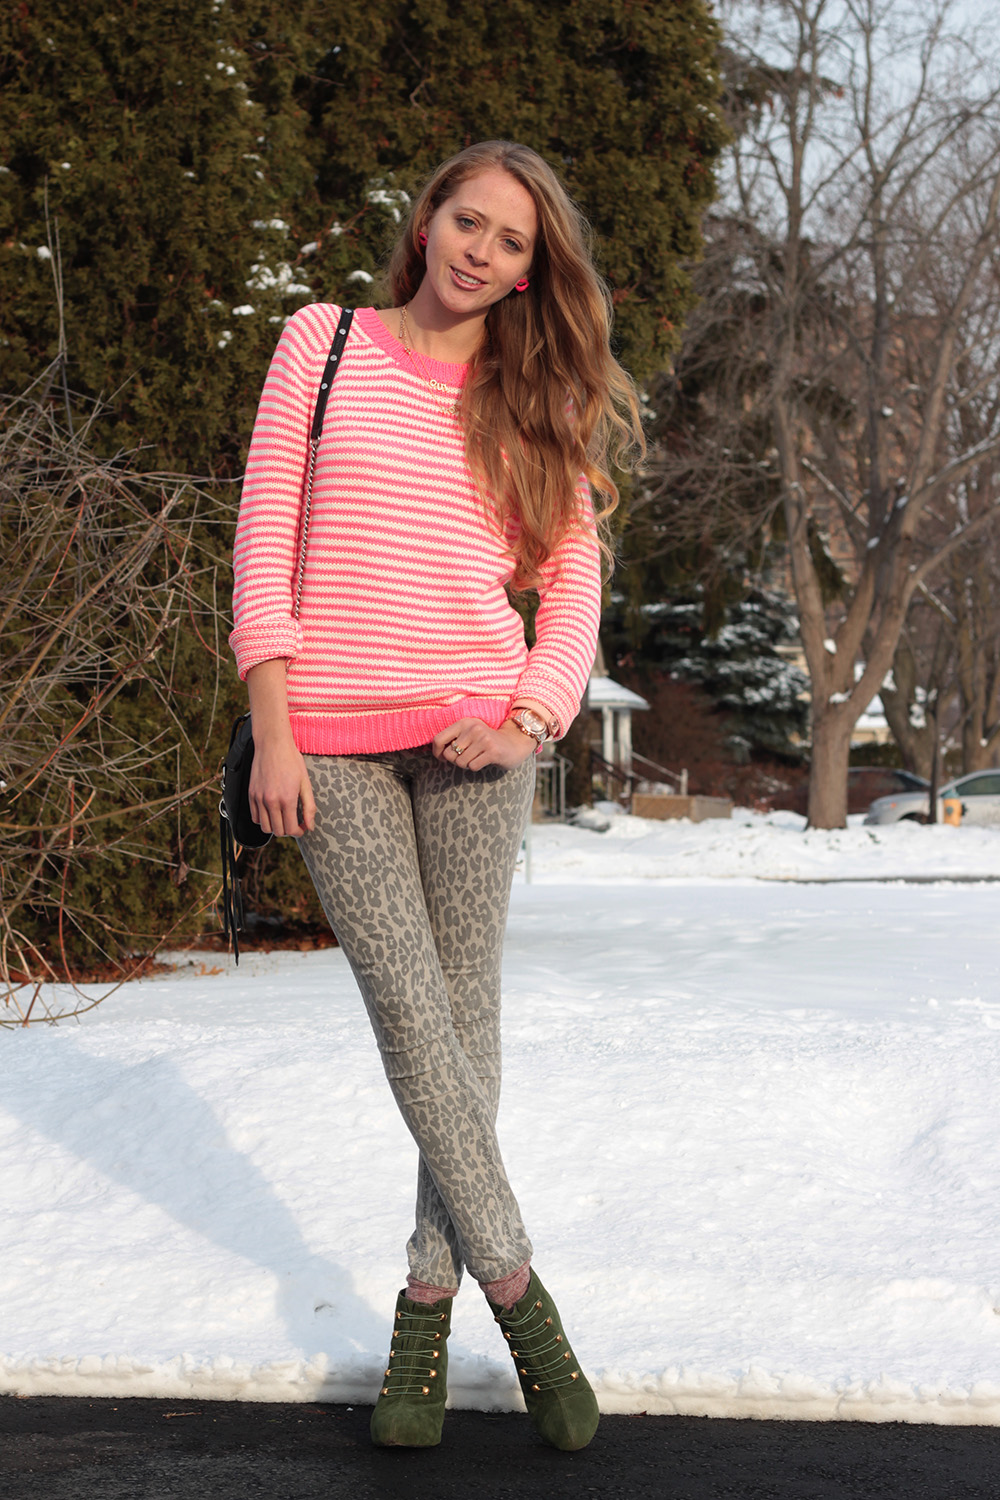 pink striped sweater and jeans